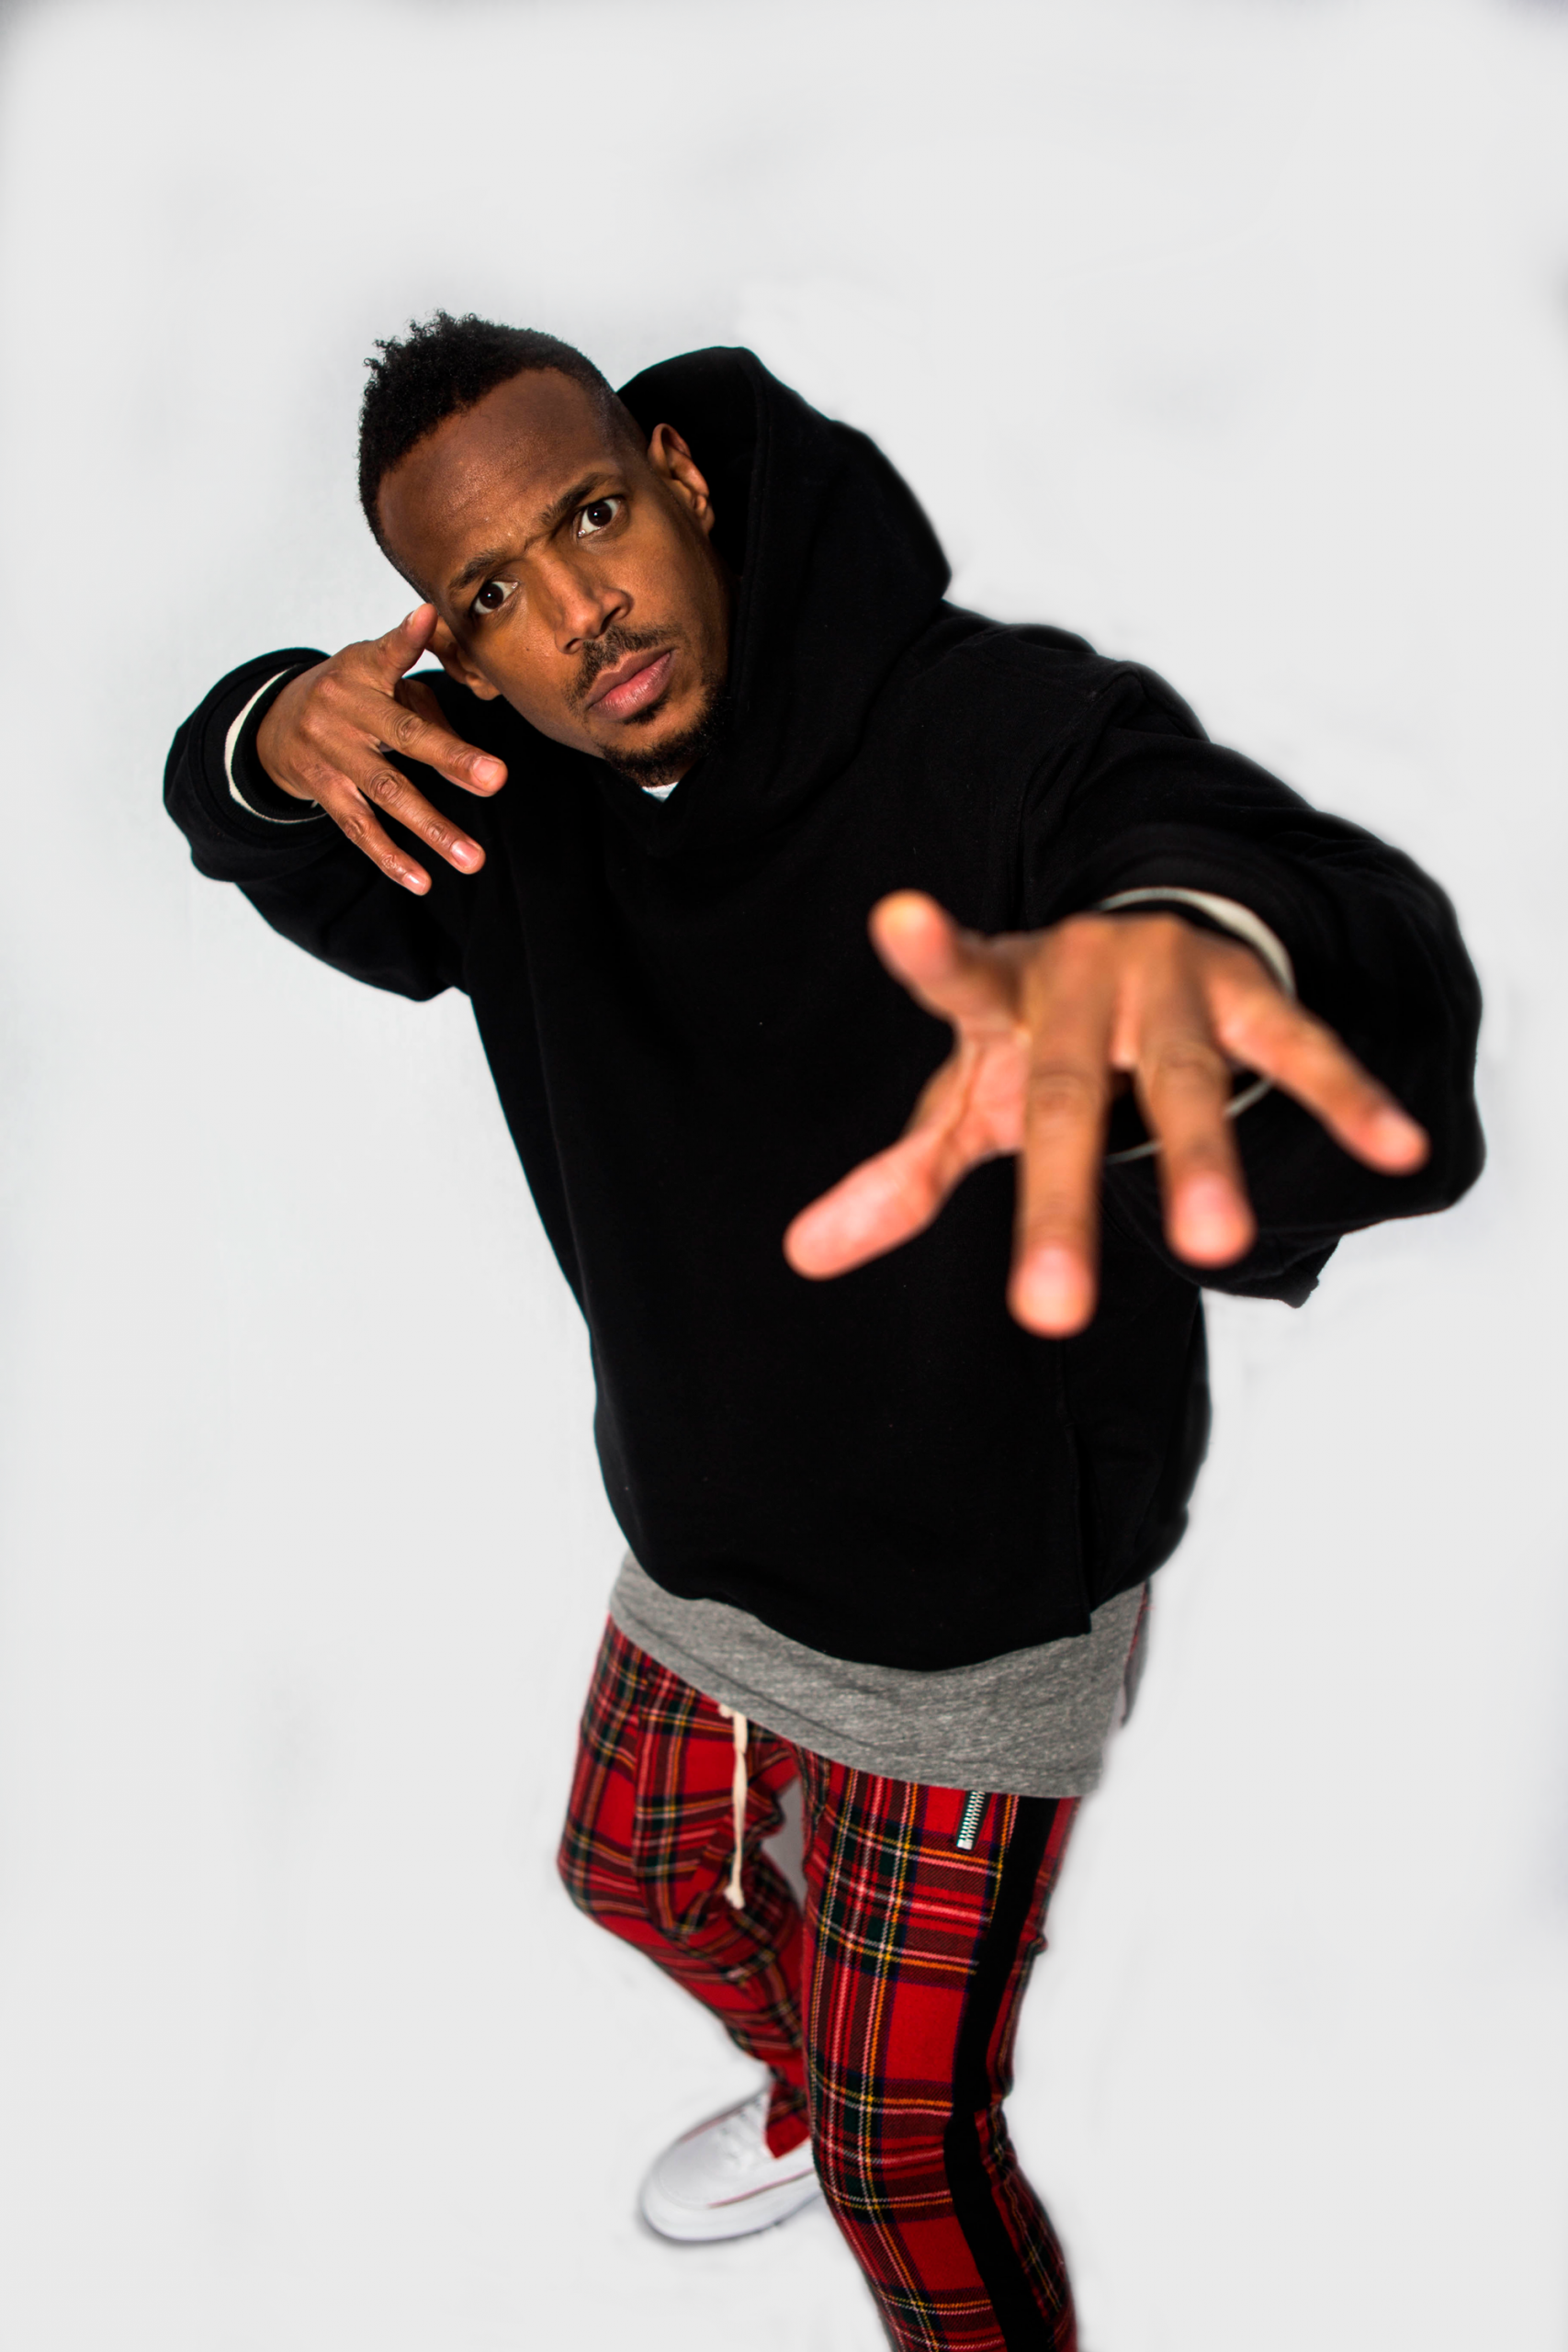 Listen to win 2 Tickets to see Marlon Wayans